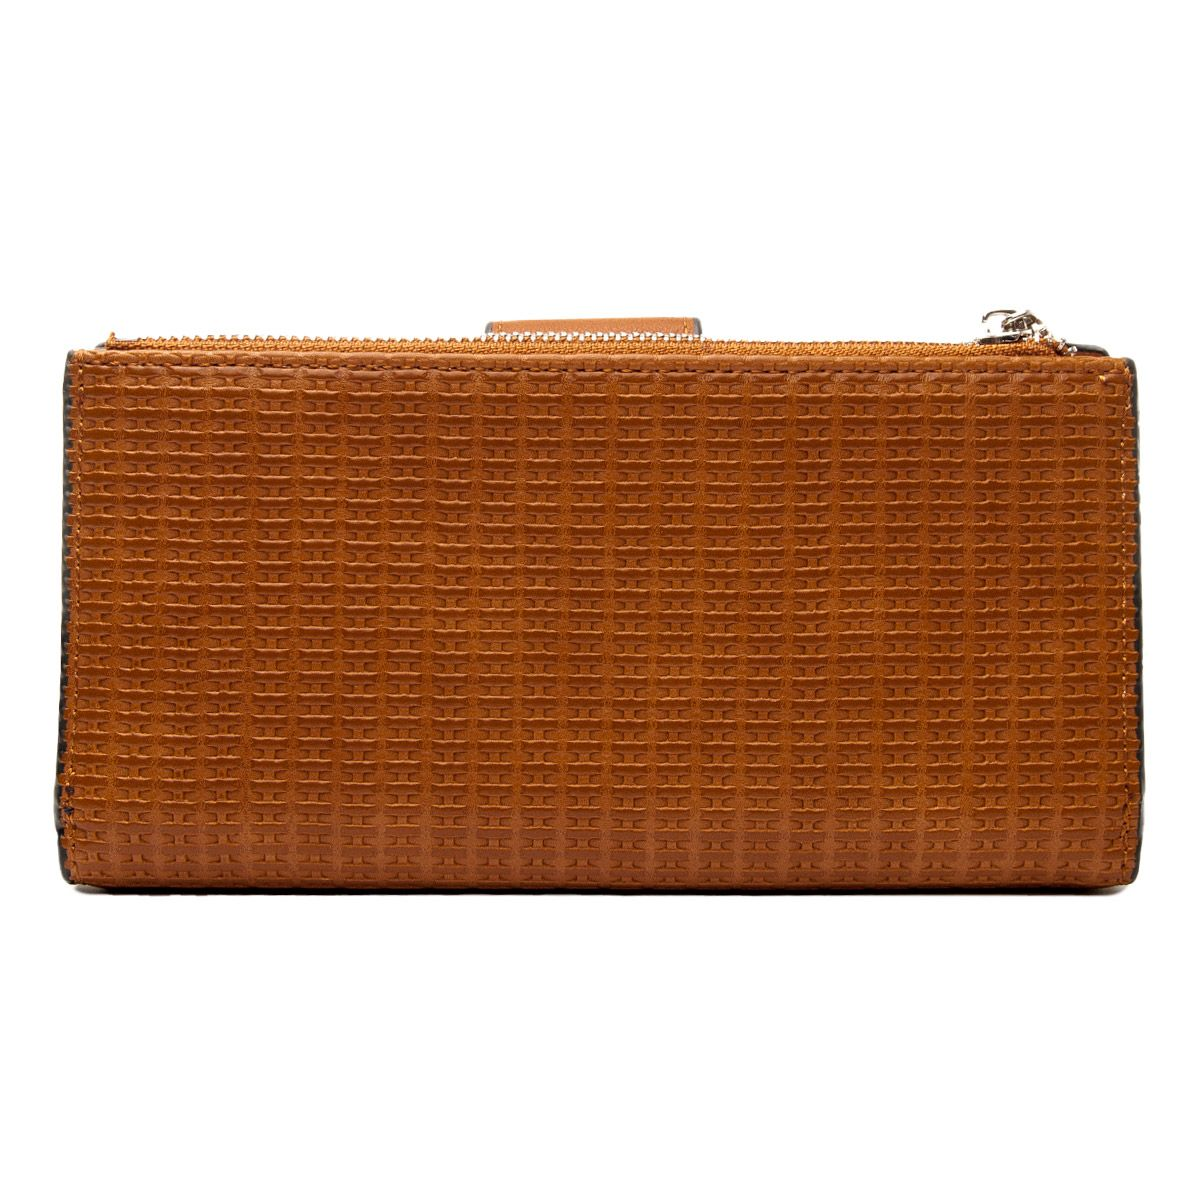 Montevita Leather Purse in Brown